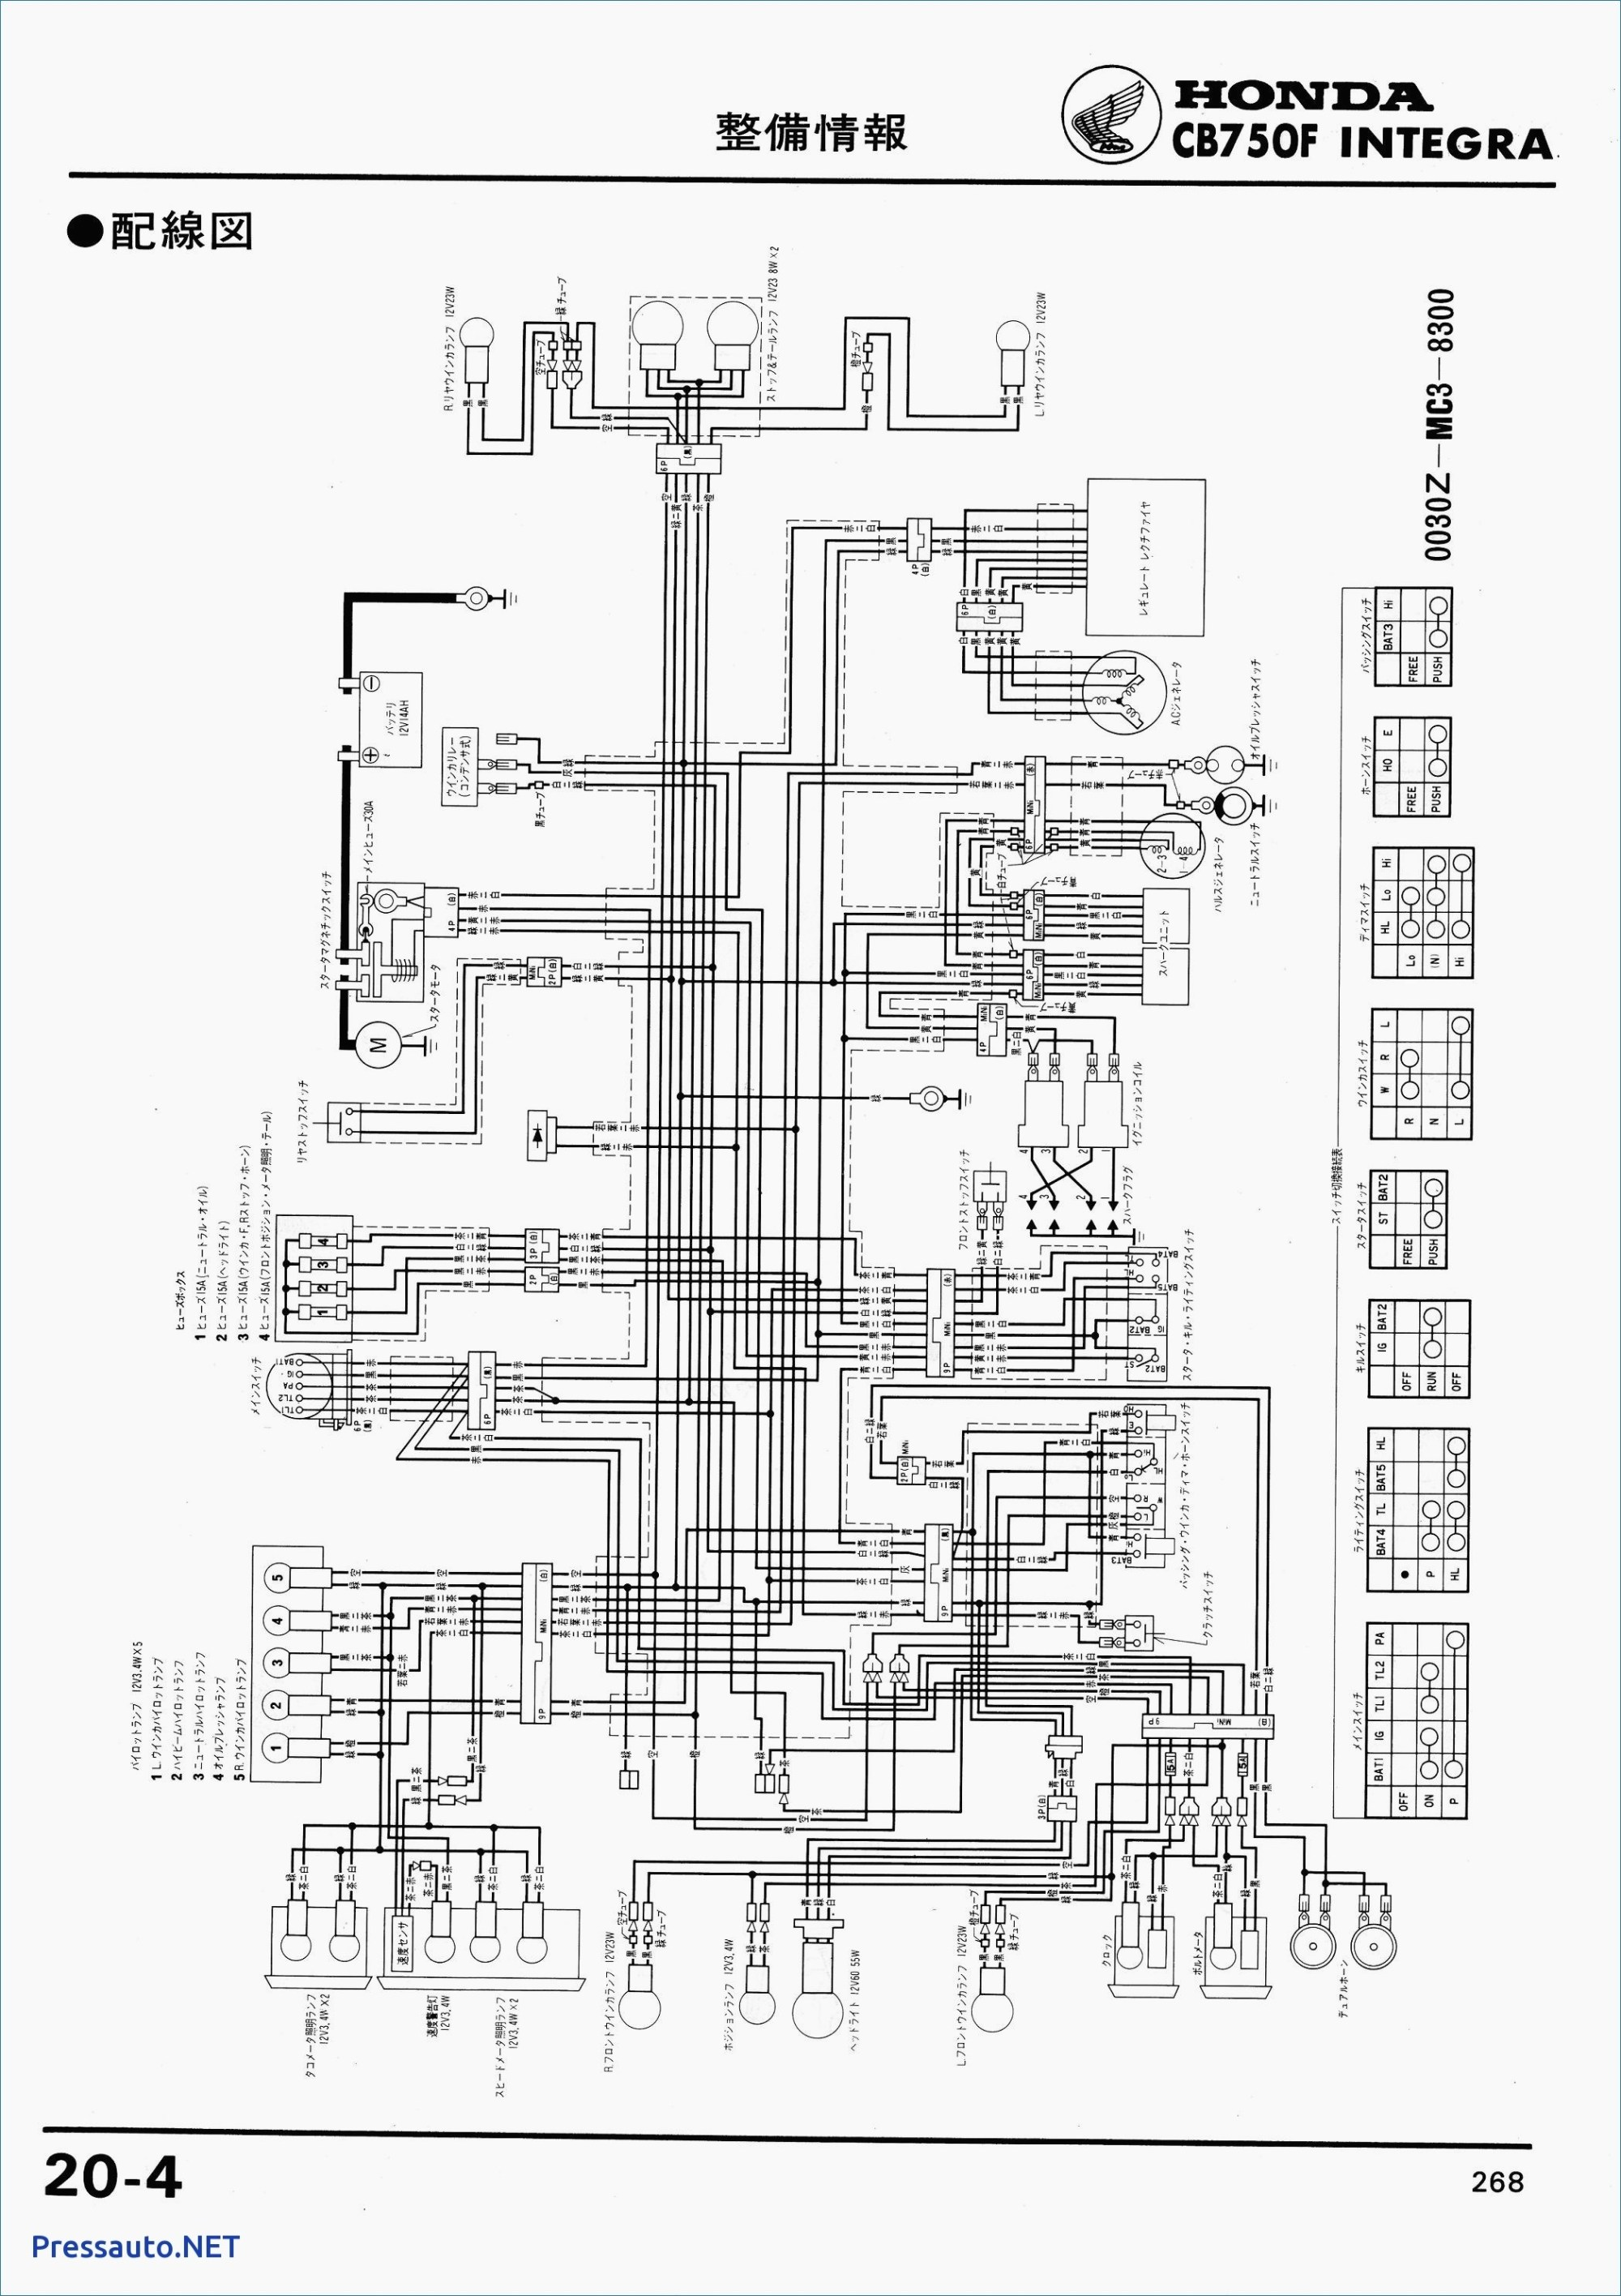 hight resolution of electric forklift wiring diagram honda bf75 wiring diagram new magnificent 74 rd 200 wiring diagram